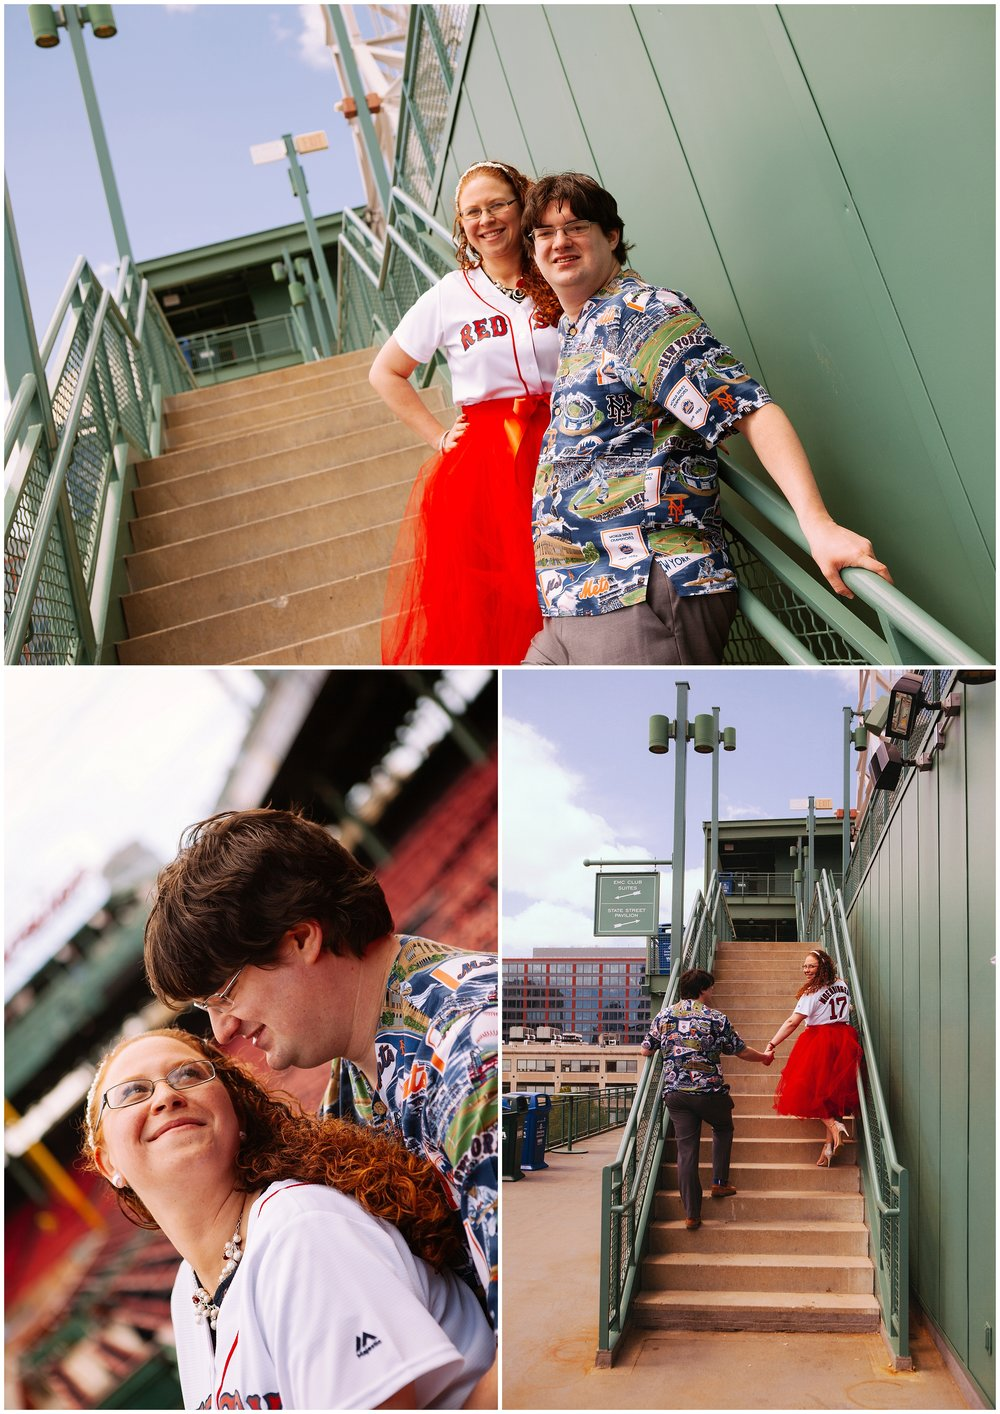 Fenway Park Engagement Photography - Man and woman portrait collage.